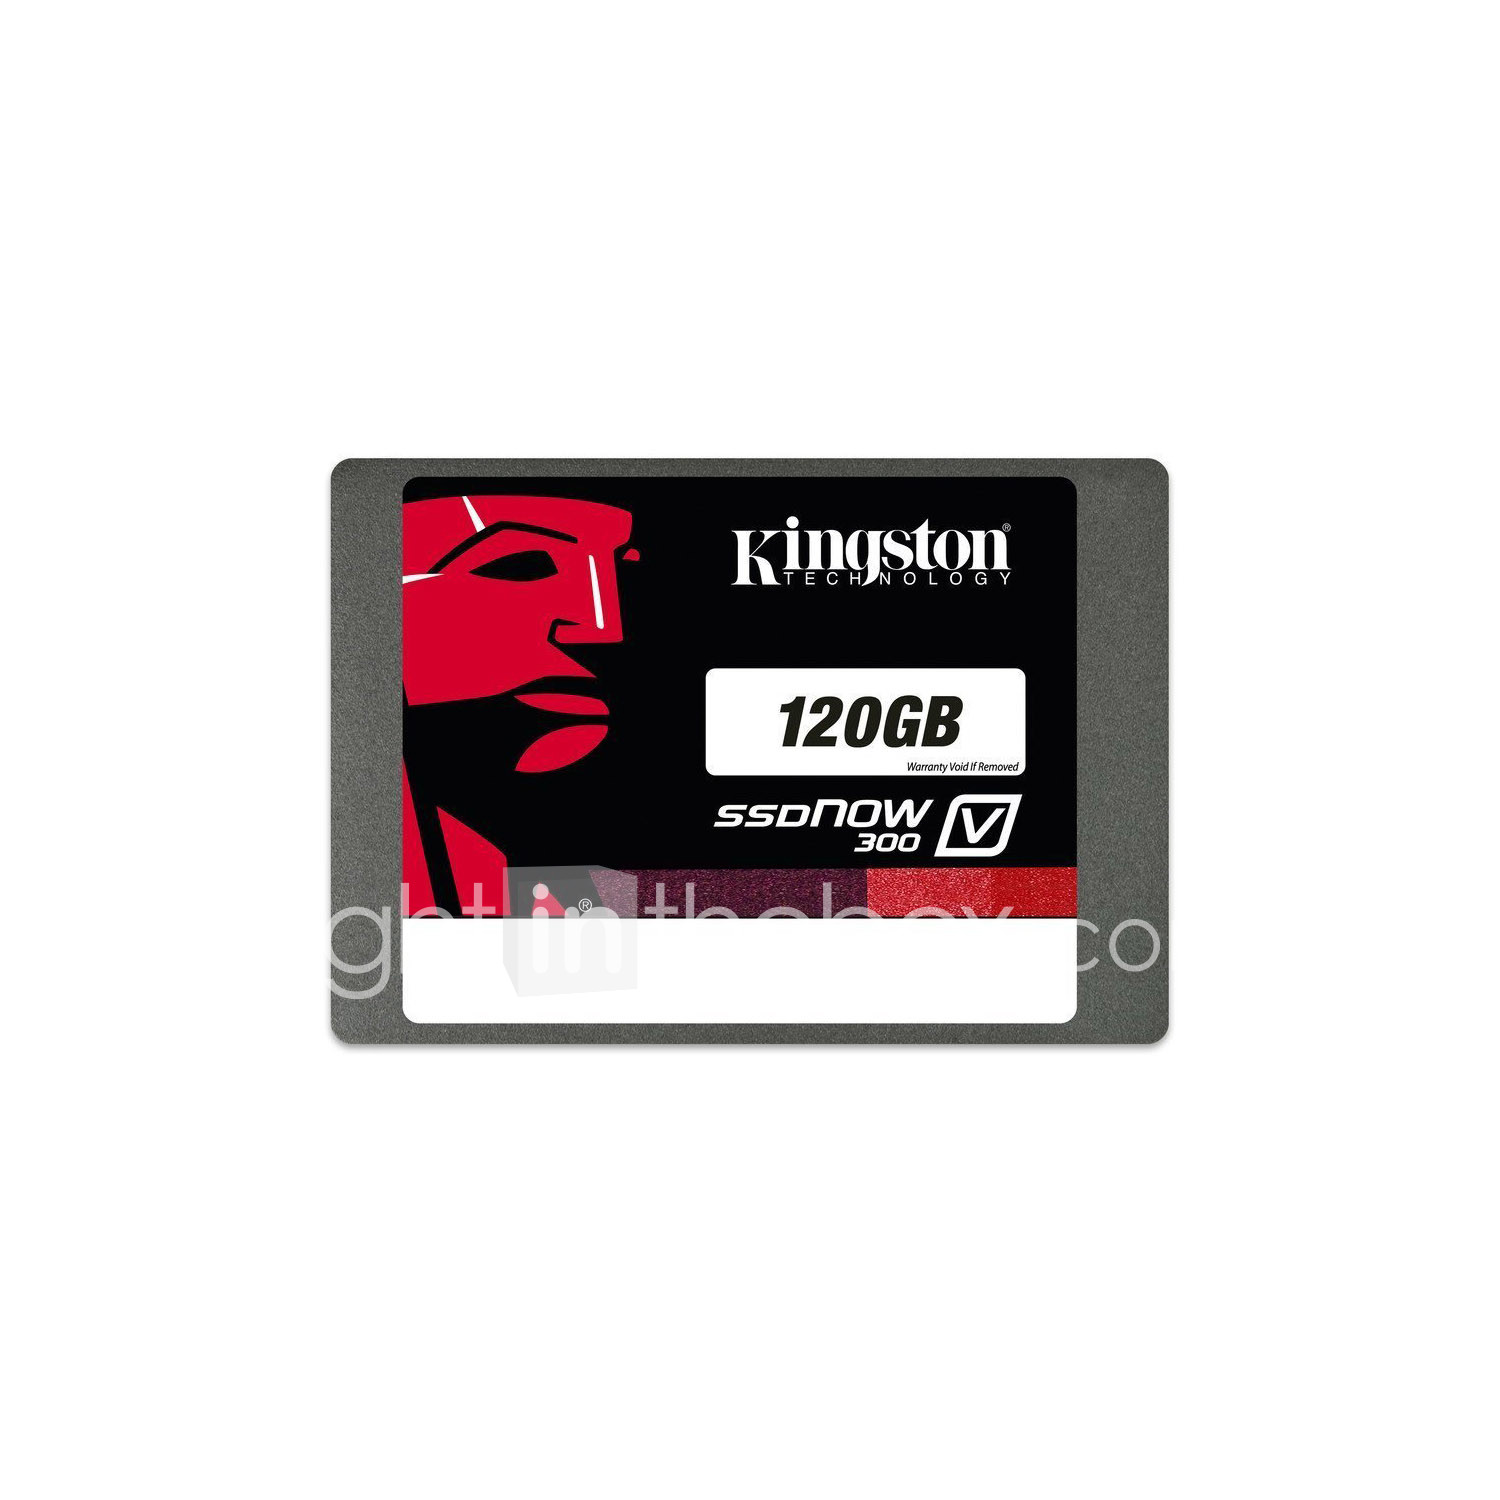 kingston solid state drive software